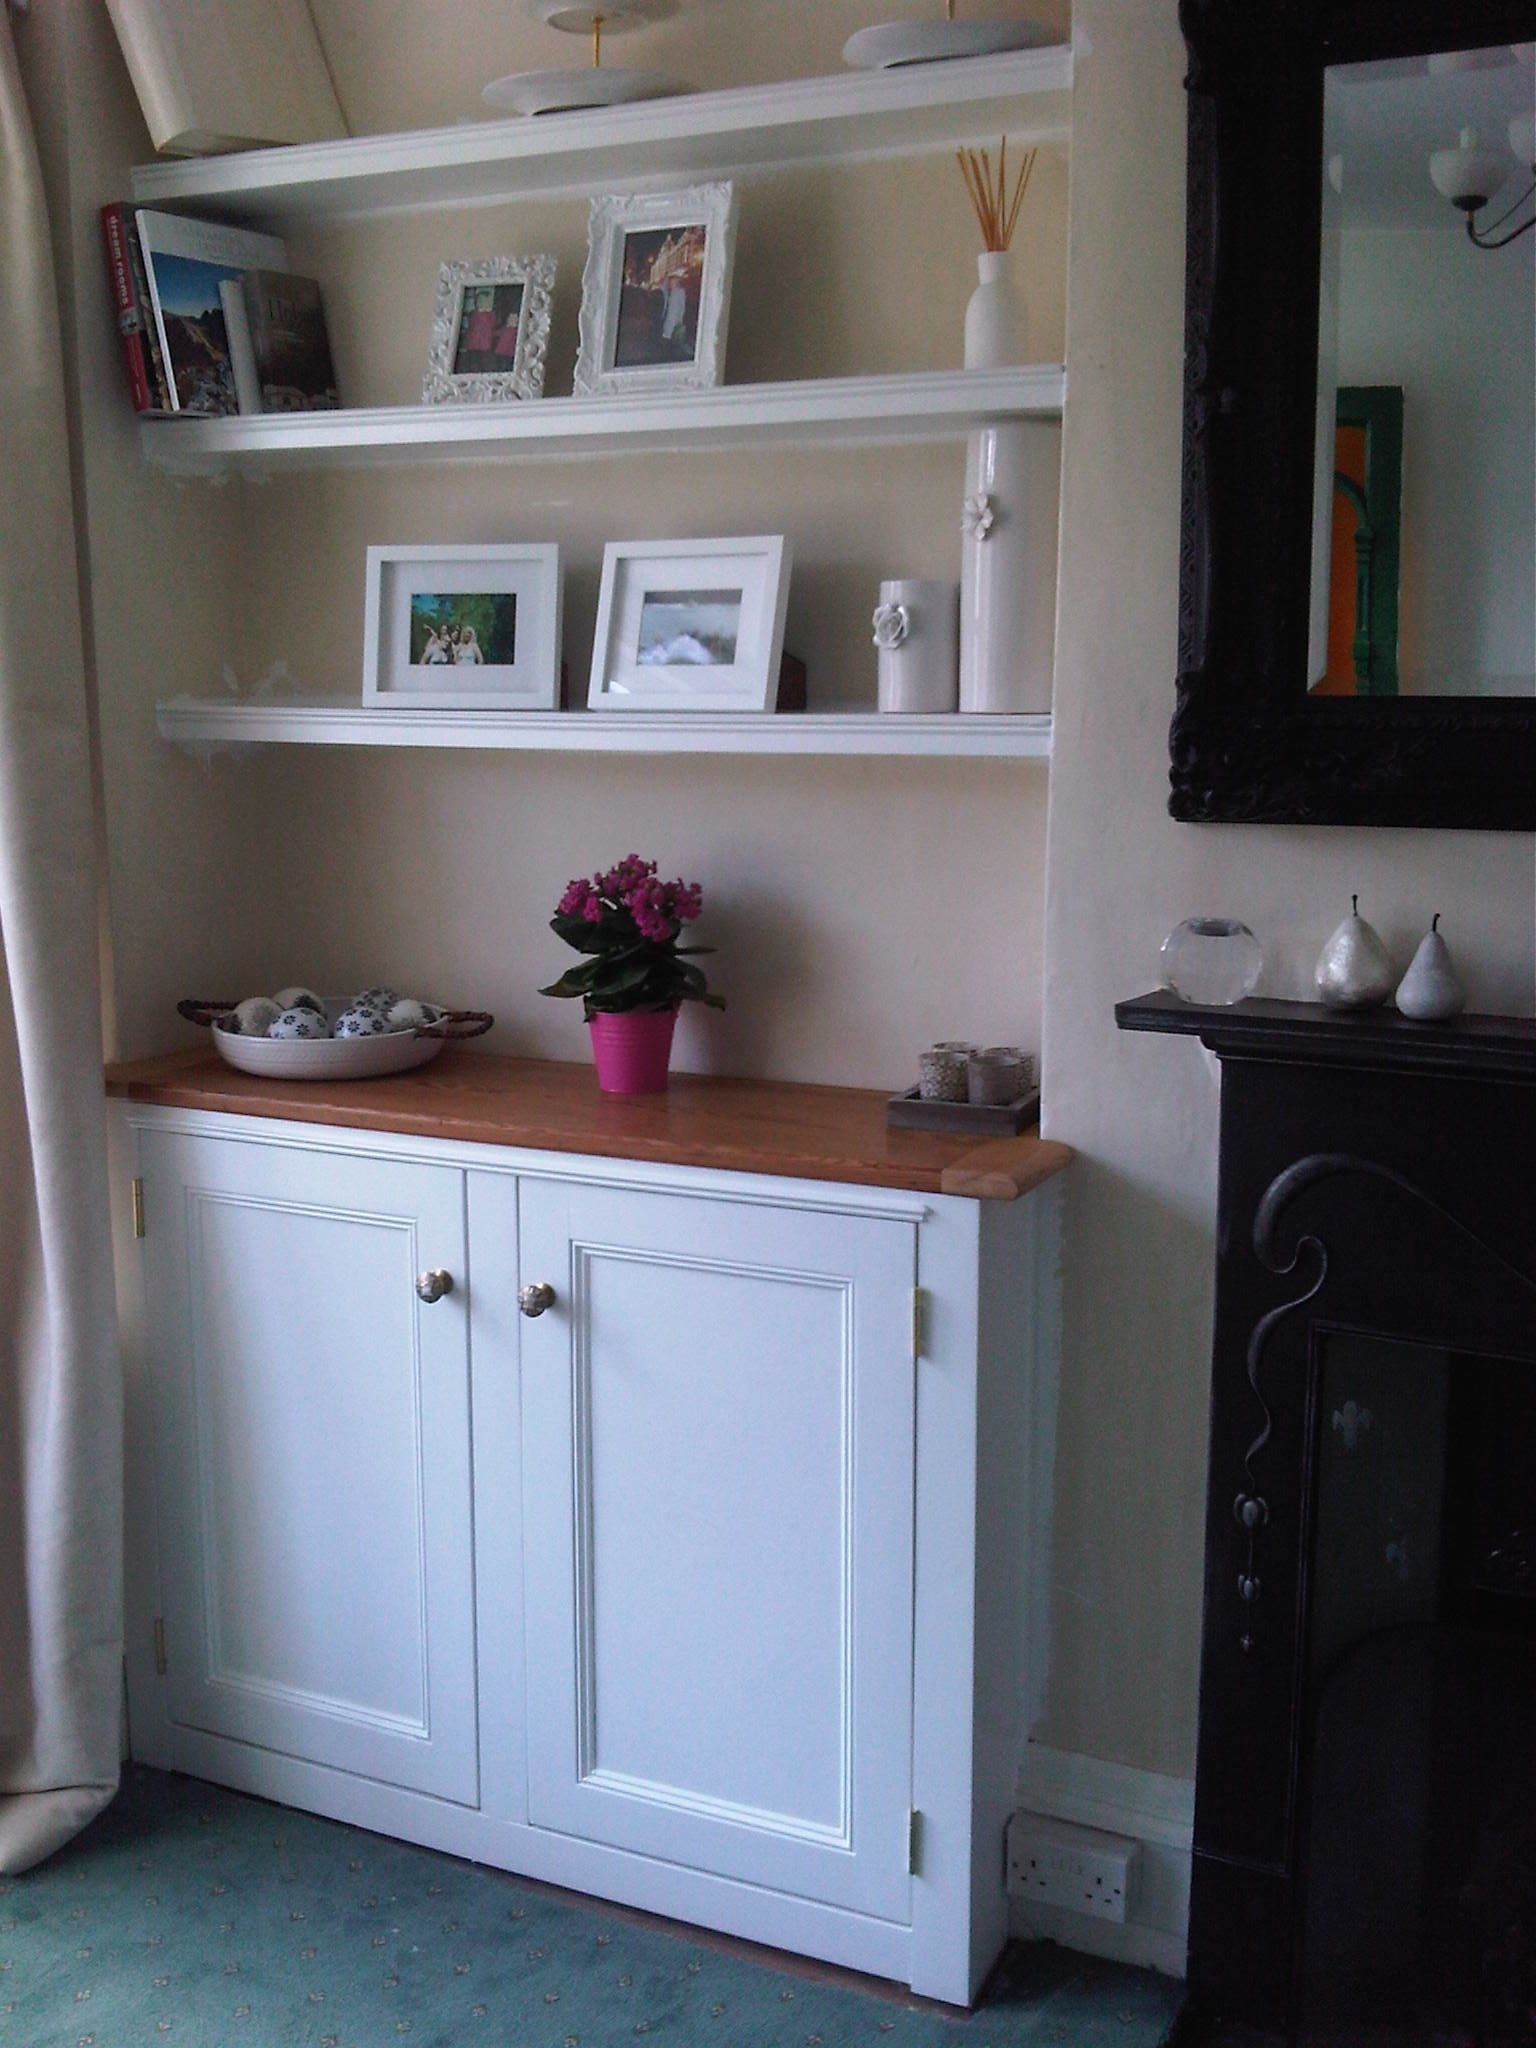 Alcove cabinet reclaimed pine timber top www ...